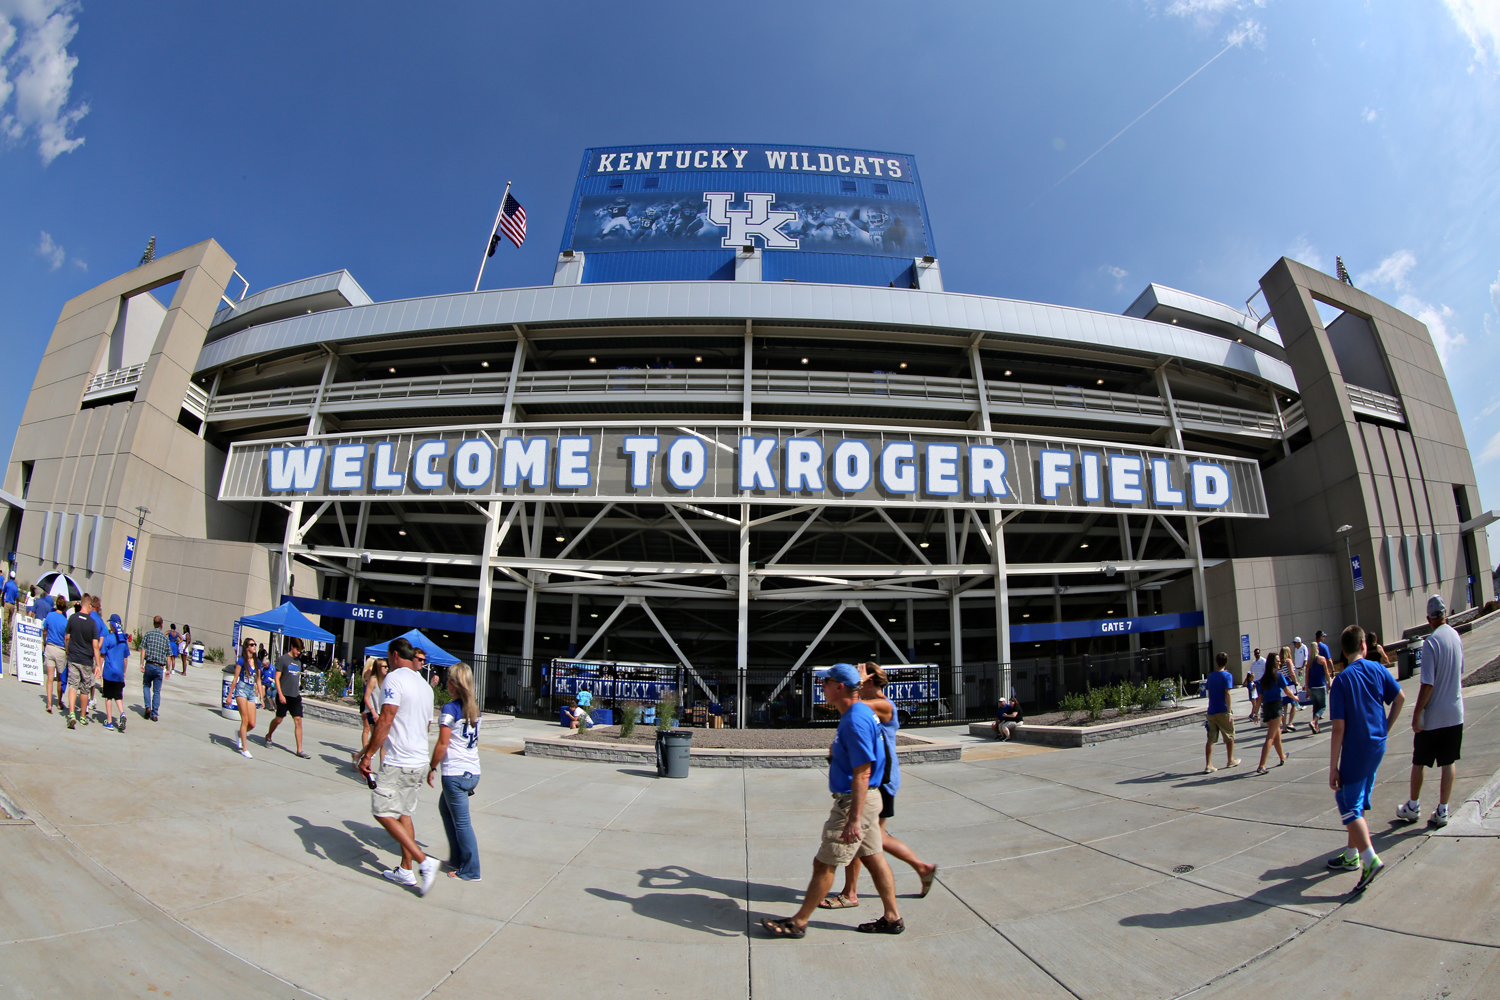 From UK Athletics (just a rendering. Design of logo and signage is in progress.)